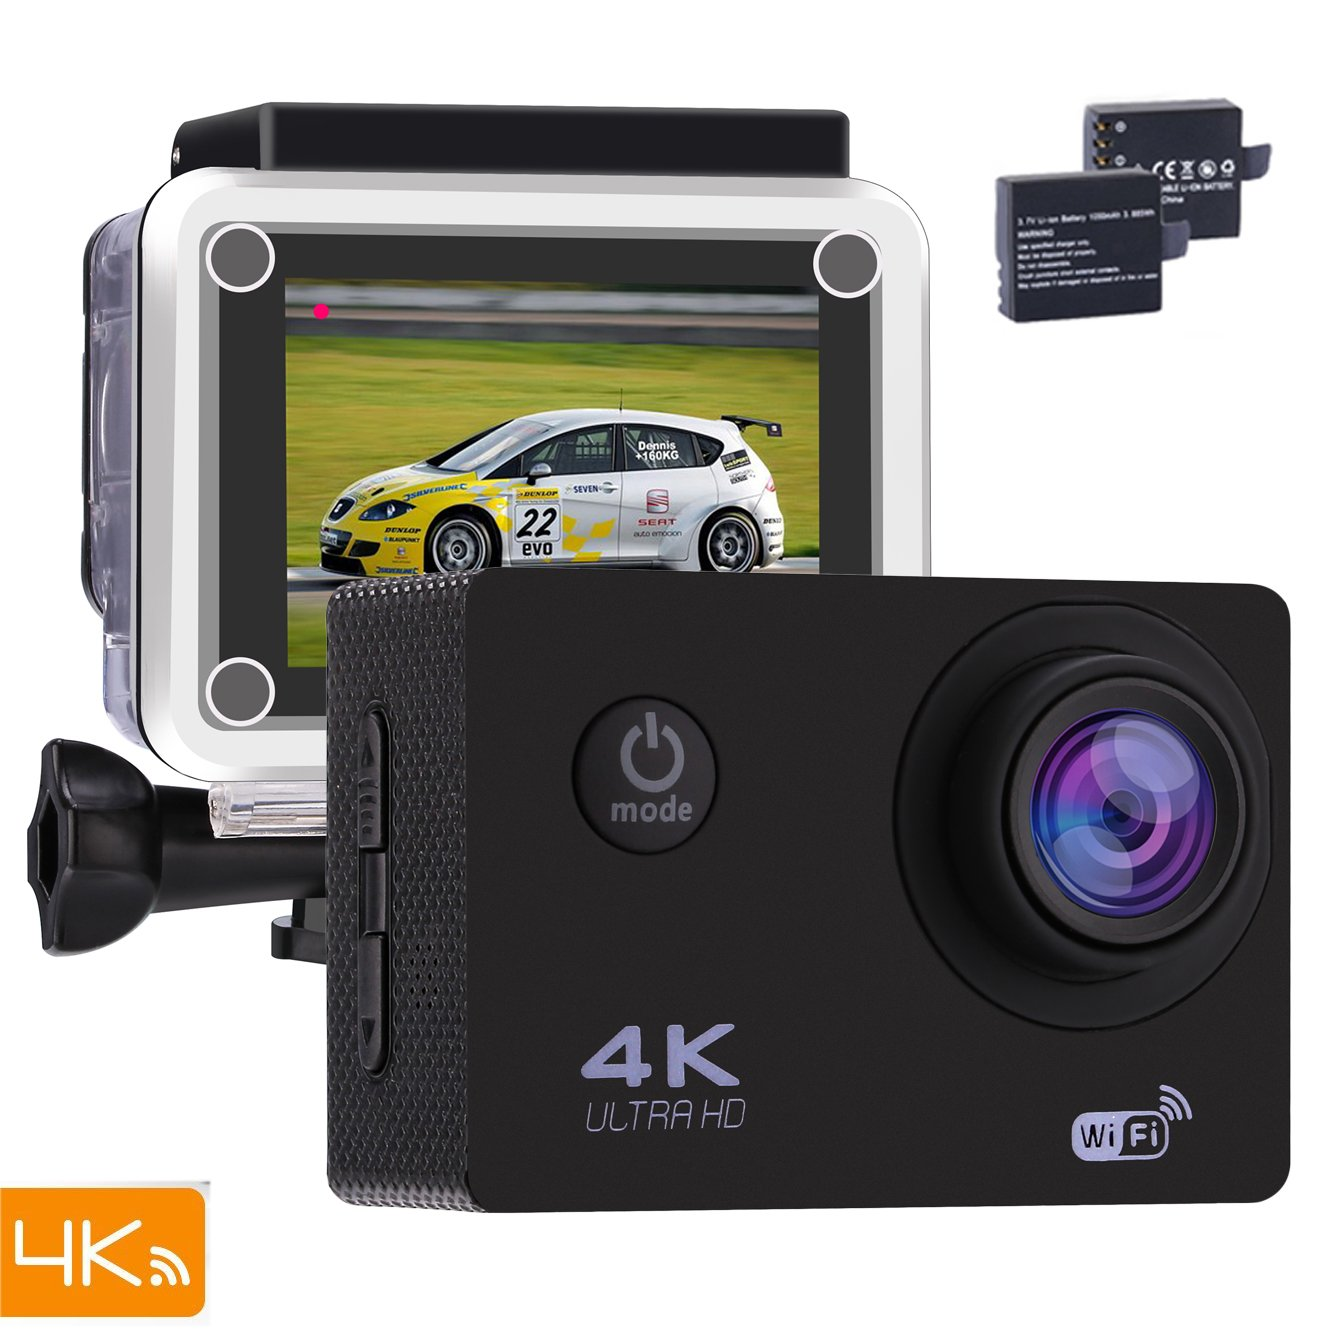 Action Camera Bnoia 4K Underwater Camera 30M Full HD 2.0'' LCD Wi-Fi 16MP Waterproof Camcorder170° Ultra Wide Angle Lens With Mounting Accessories Kit for Cycling Swimming Climbing (Version-1)